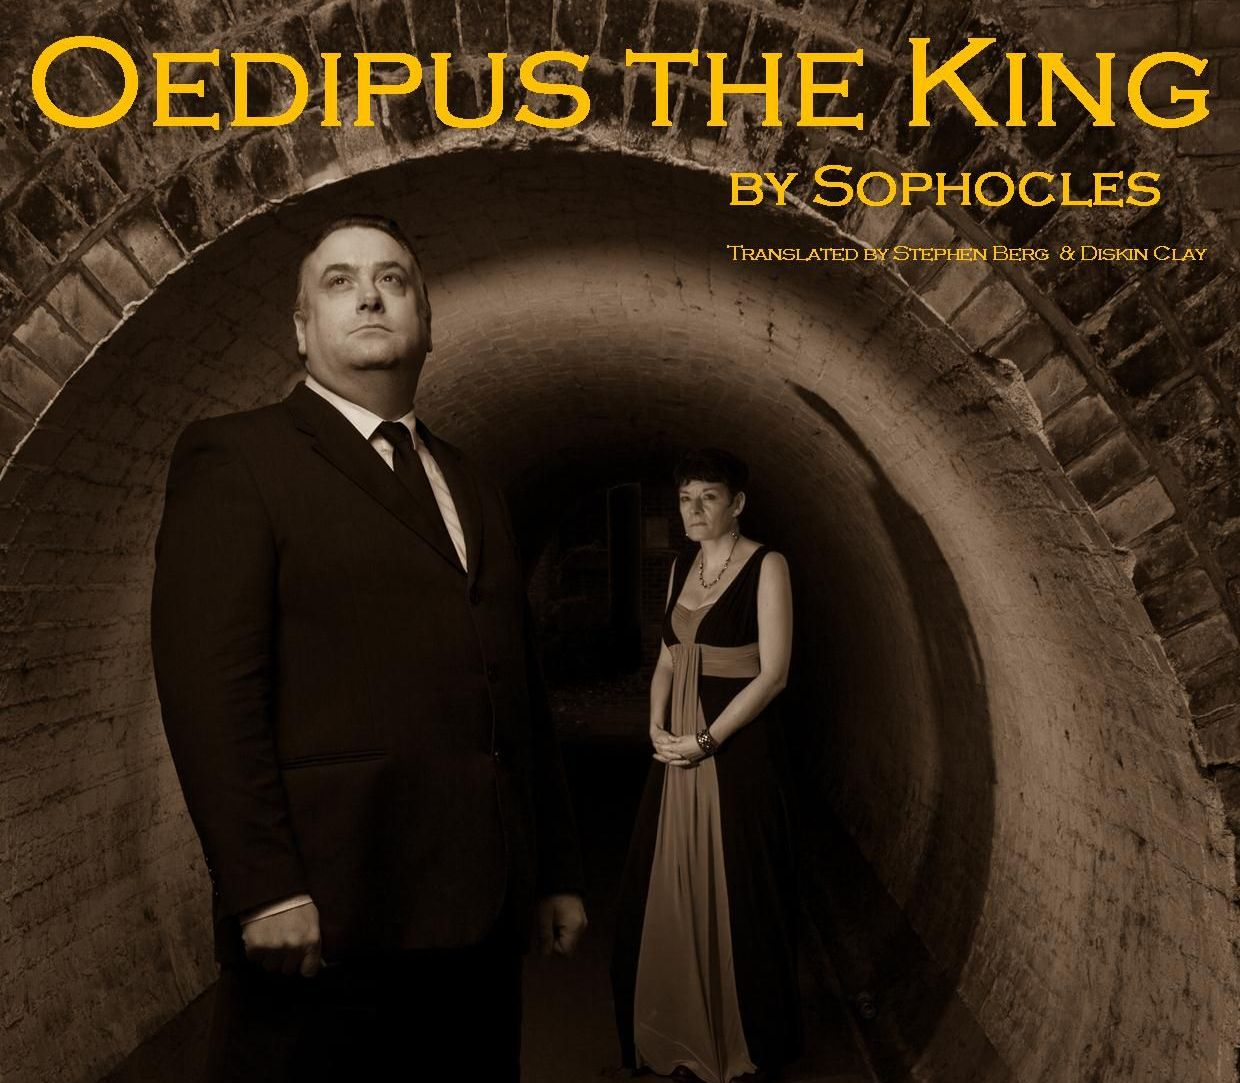 Michael Gray S Arts Blog Oedipus The King